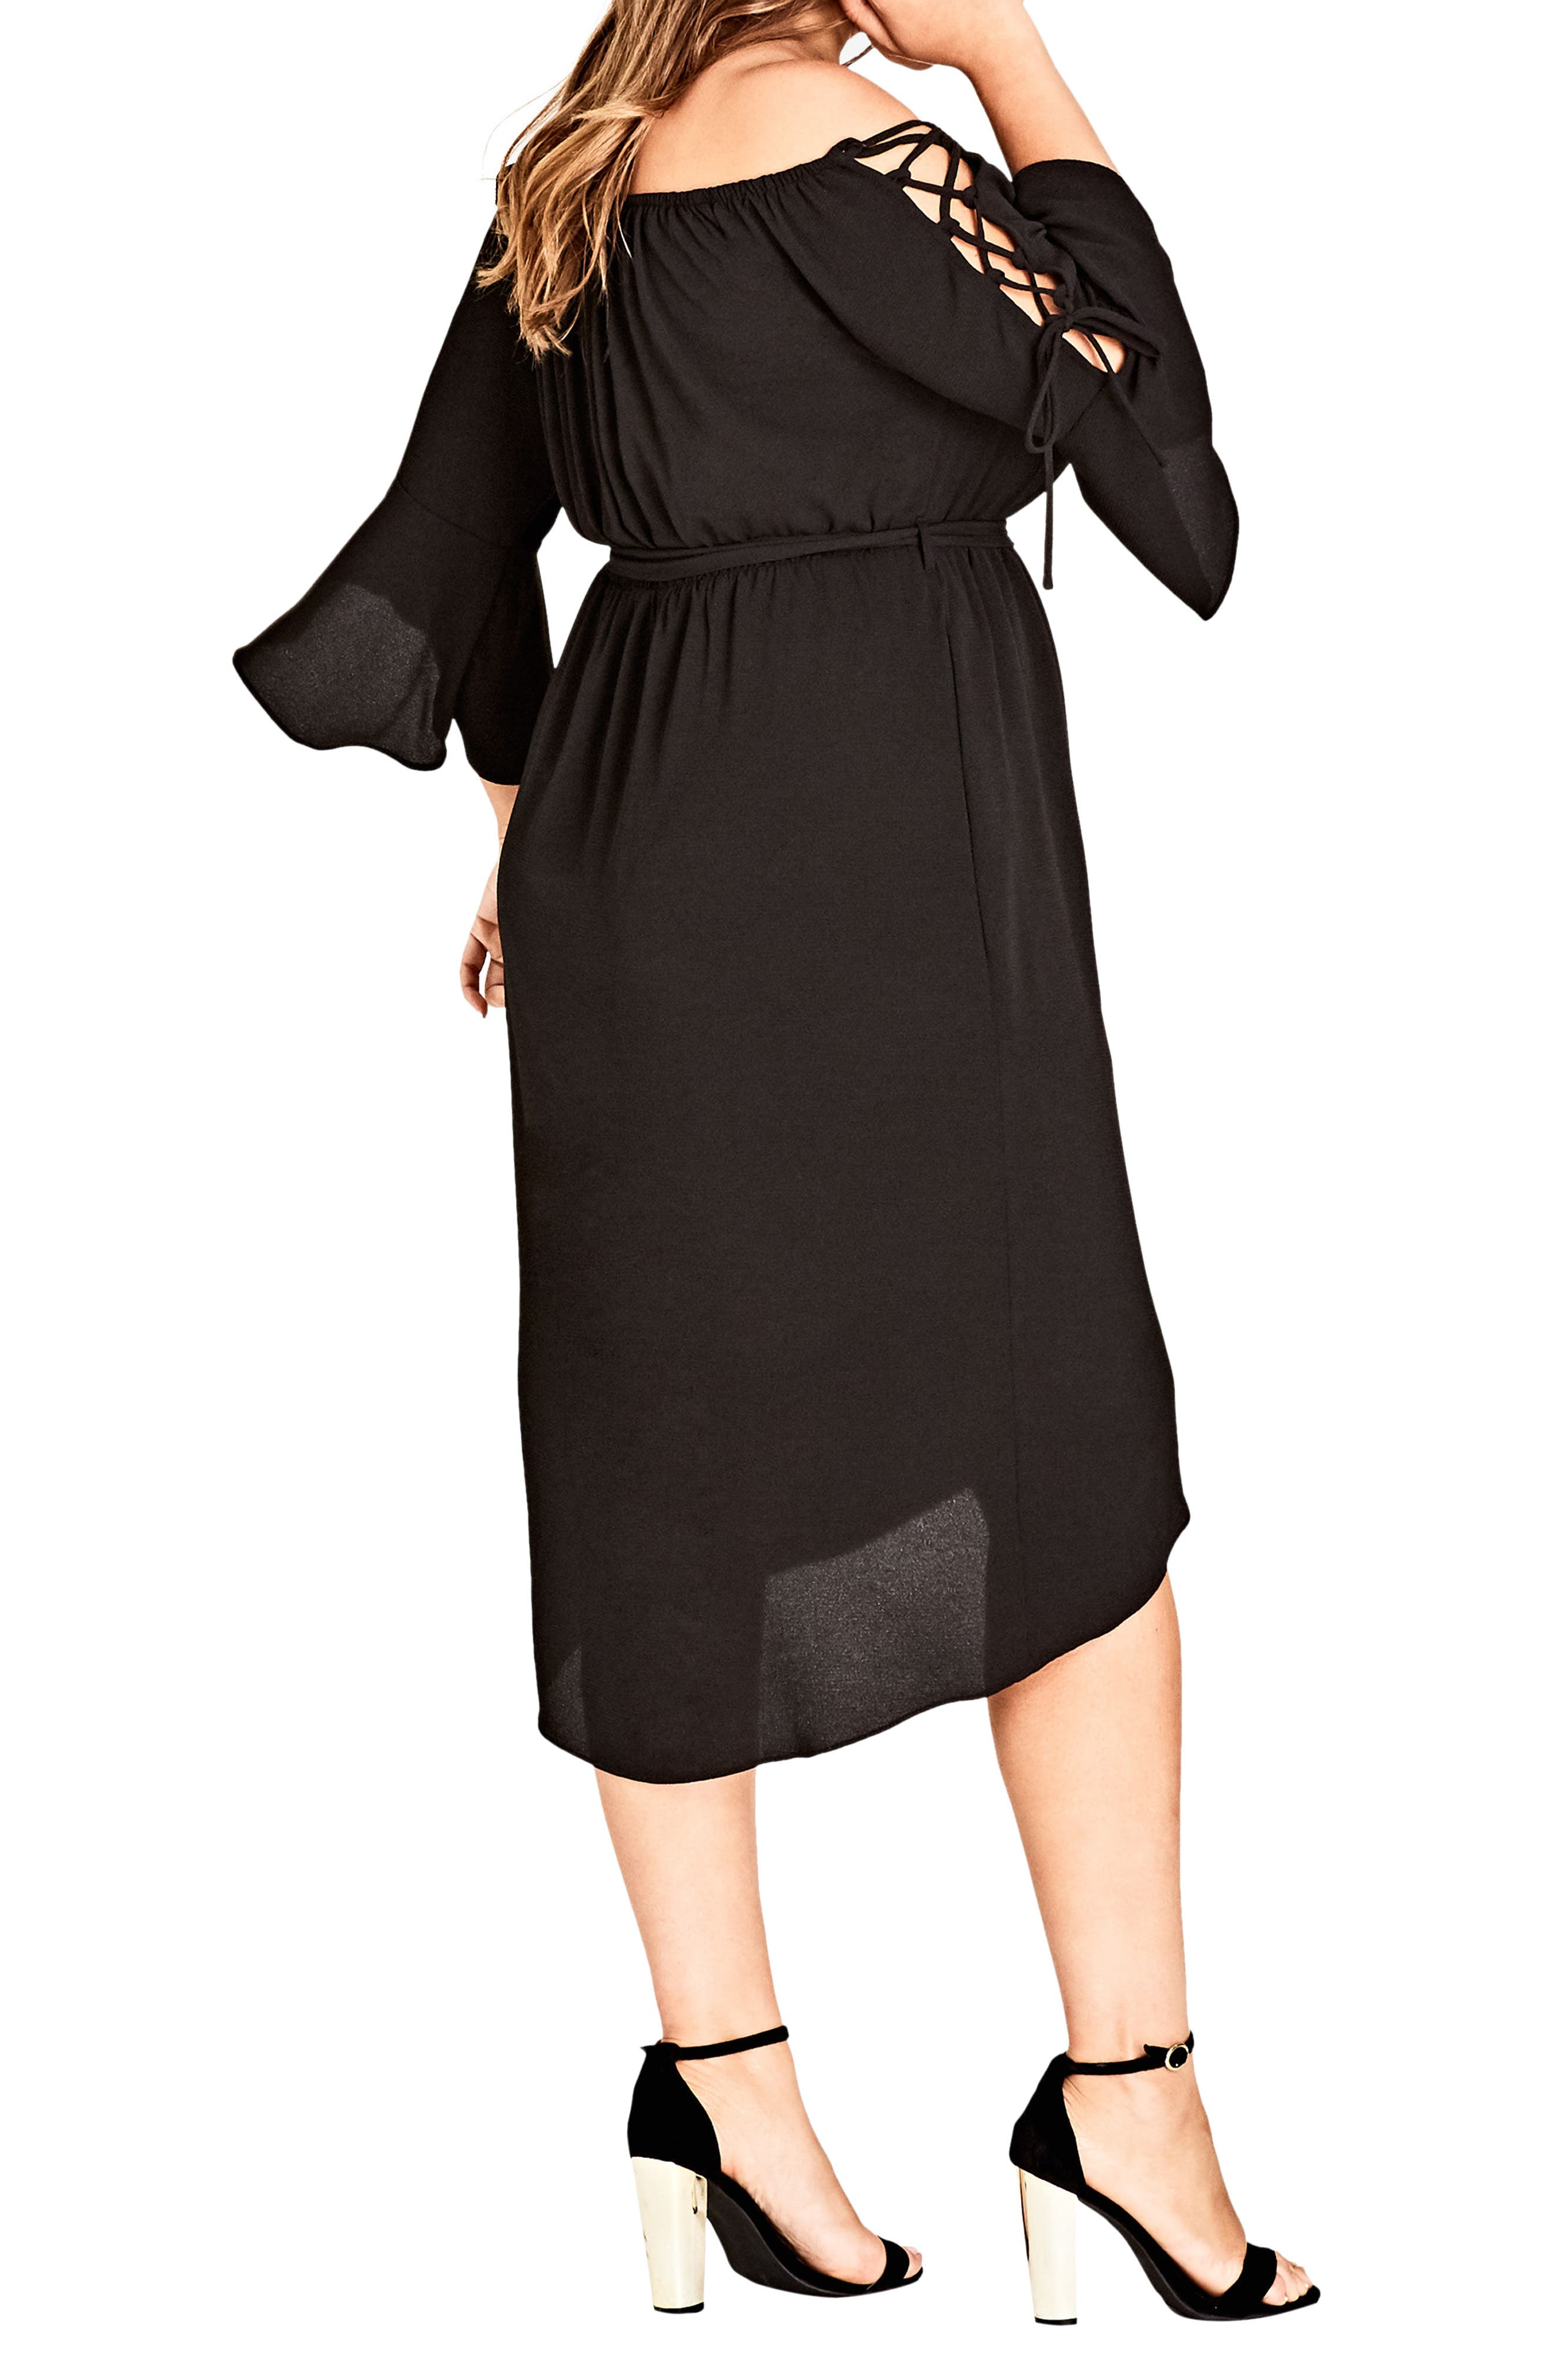 Lace Bell Sleeve Off the Shoulder Midi Dress,                             Alternate thumbnail 2, color,                             BLACK